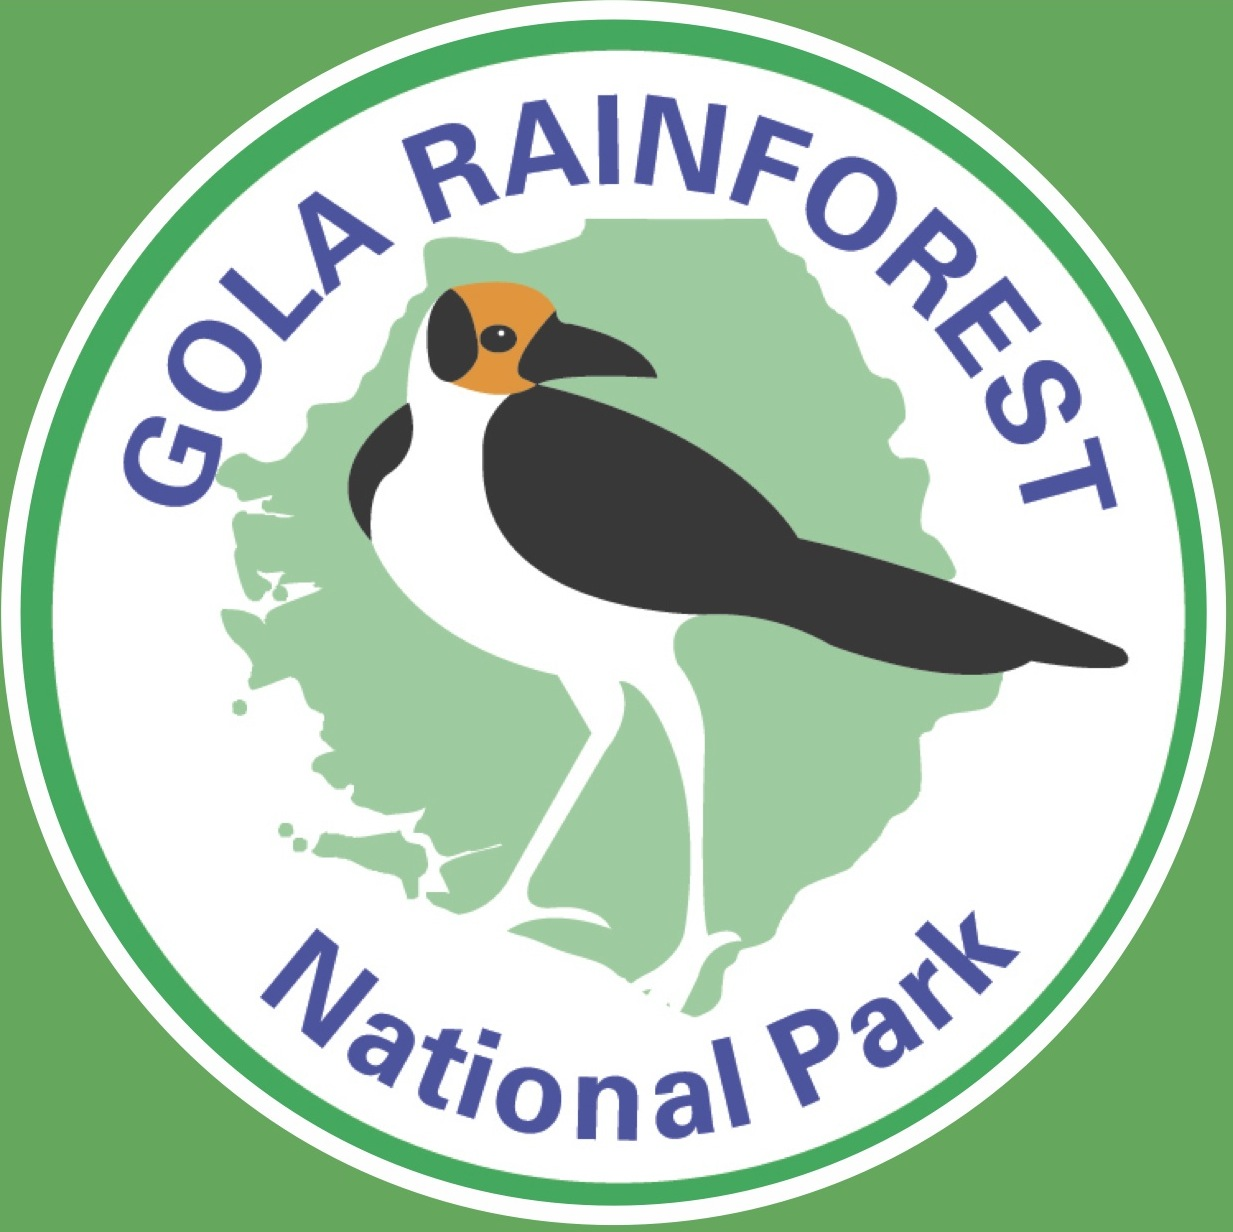 Gola Rainforest National Park